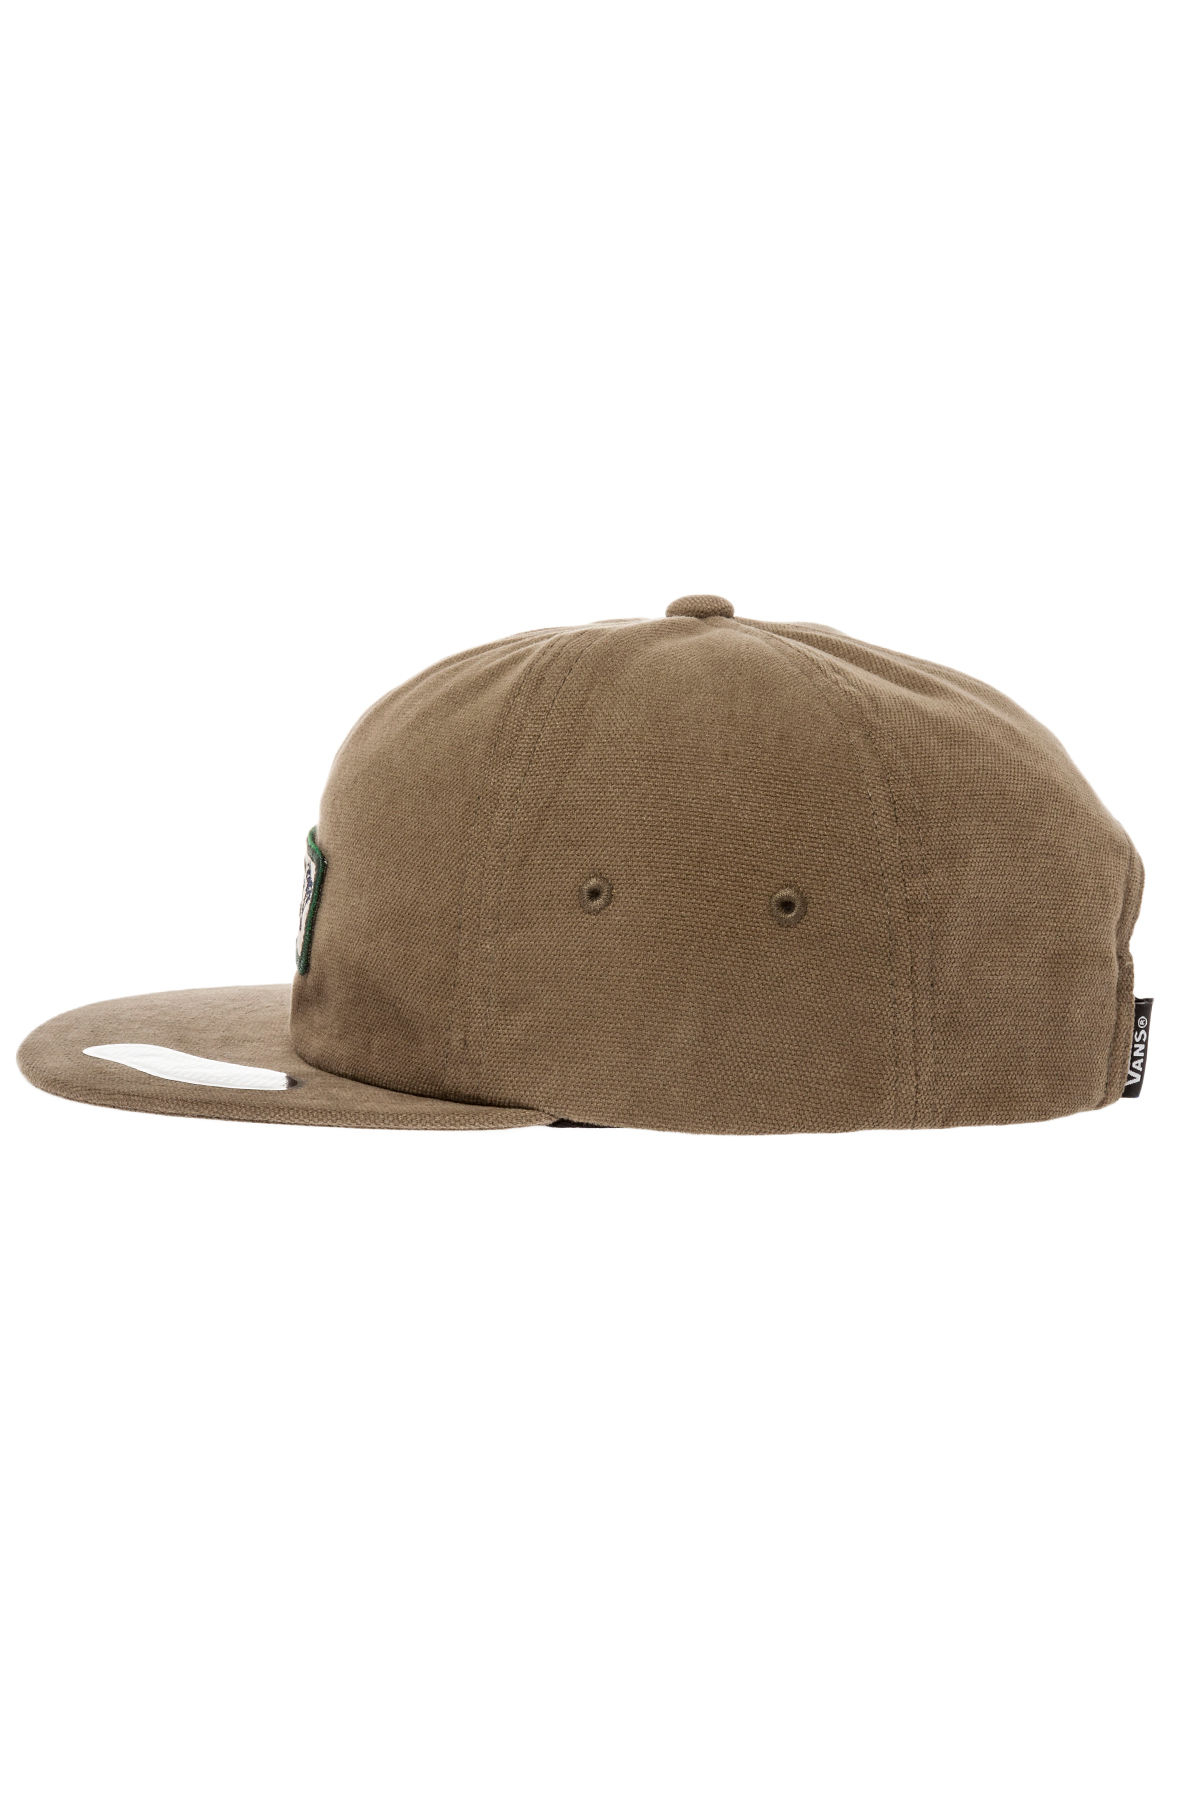 Lyst - Vans The Otw Surf Club Camp Cap in Natural for Men 8ed70956db1